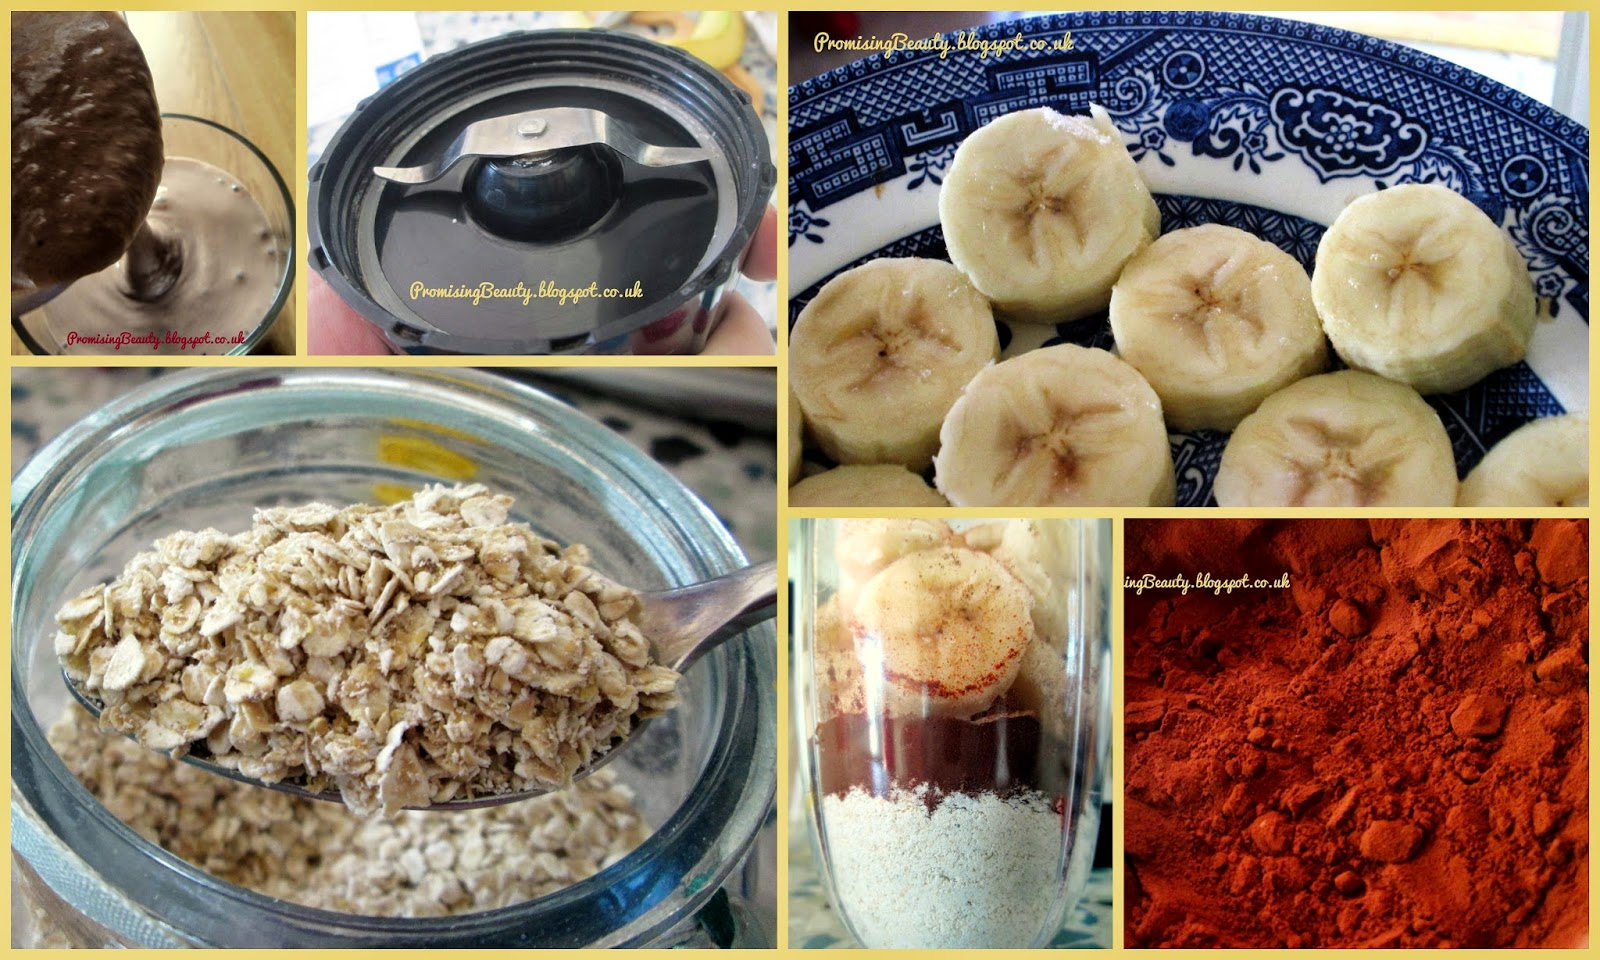 Ingredients for breakfast healthy smoothie milkshake. Frozen banana with cayenne pepper, cocoa powder and oats. A milling blades for the oats in a bullet blender. Delicious healthy milkshake chocolate banana flavour.